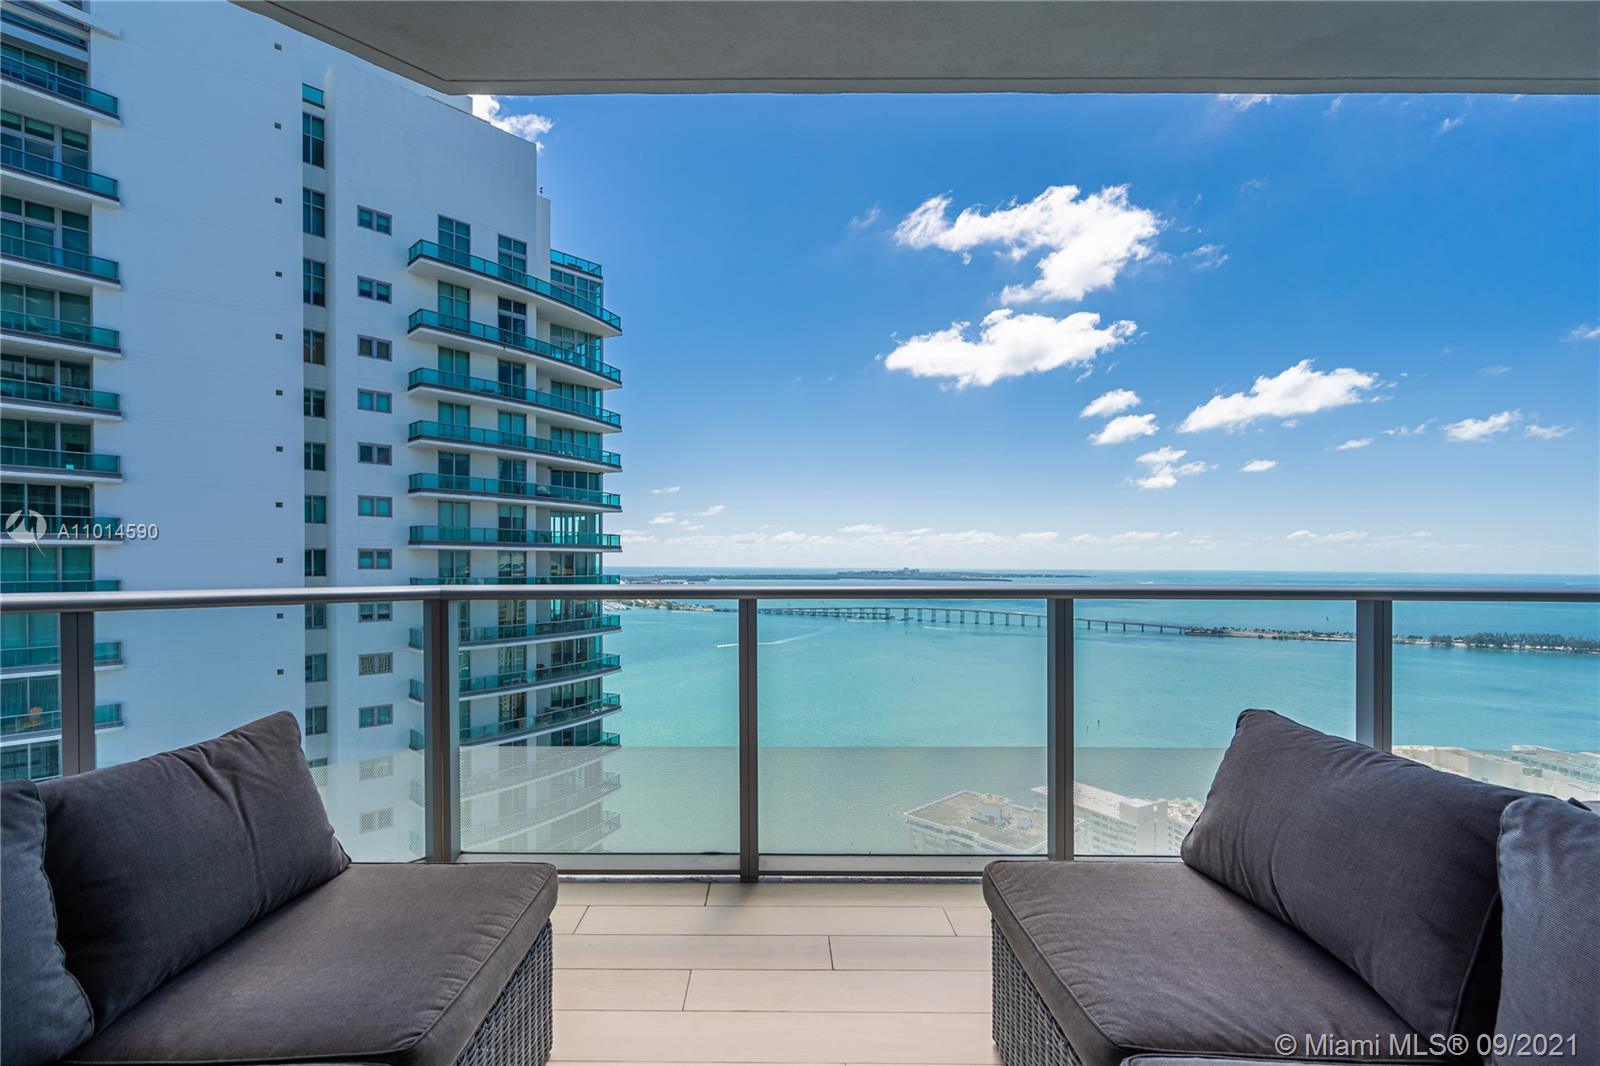 Amazing corner lower - PH 3 Beds ,3.5 Baths + Den and 2 terrace!! Views from to the Bay and Skyline, the best finishes and top of line appliances! Expansive 46th-floor rooftop sky deck with Pool, Refreshments, Wireless Internet and panoramic views! Fully equipped, technologically advanced fitness center with high-definition televisions and wireless audio, Ground-floor restaurants, triple-height lobby accented with exotic woods, stainless steel, marble and store finishes. Live in the heart of Brickell just steps from the financial district, Brickell Cite Centre Mall and more.